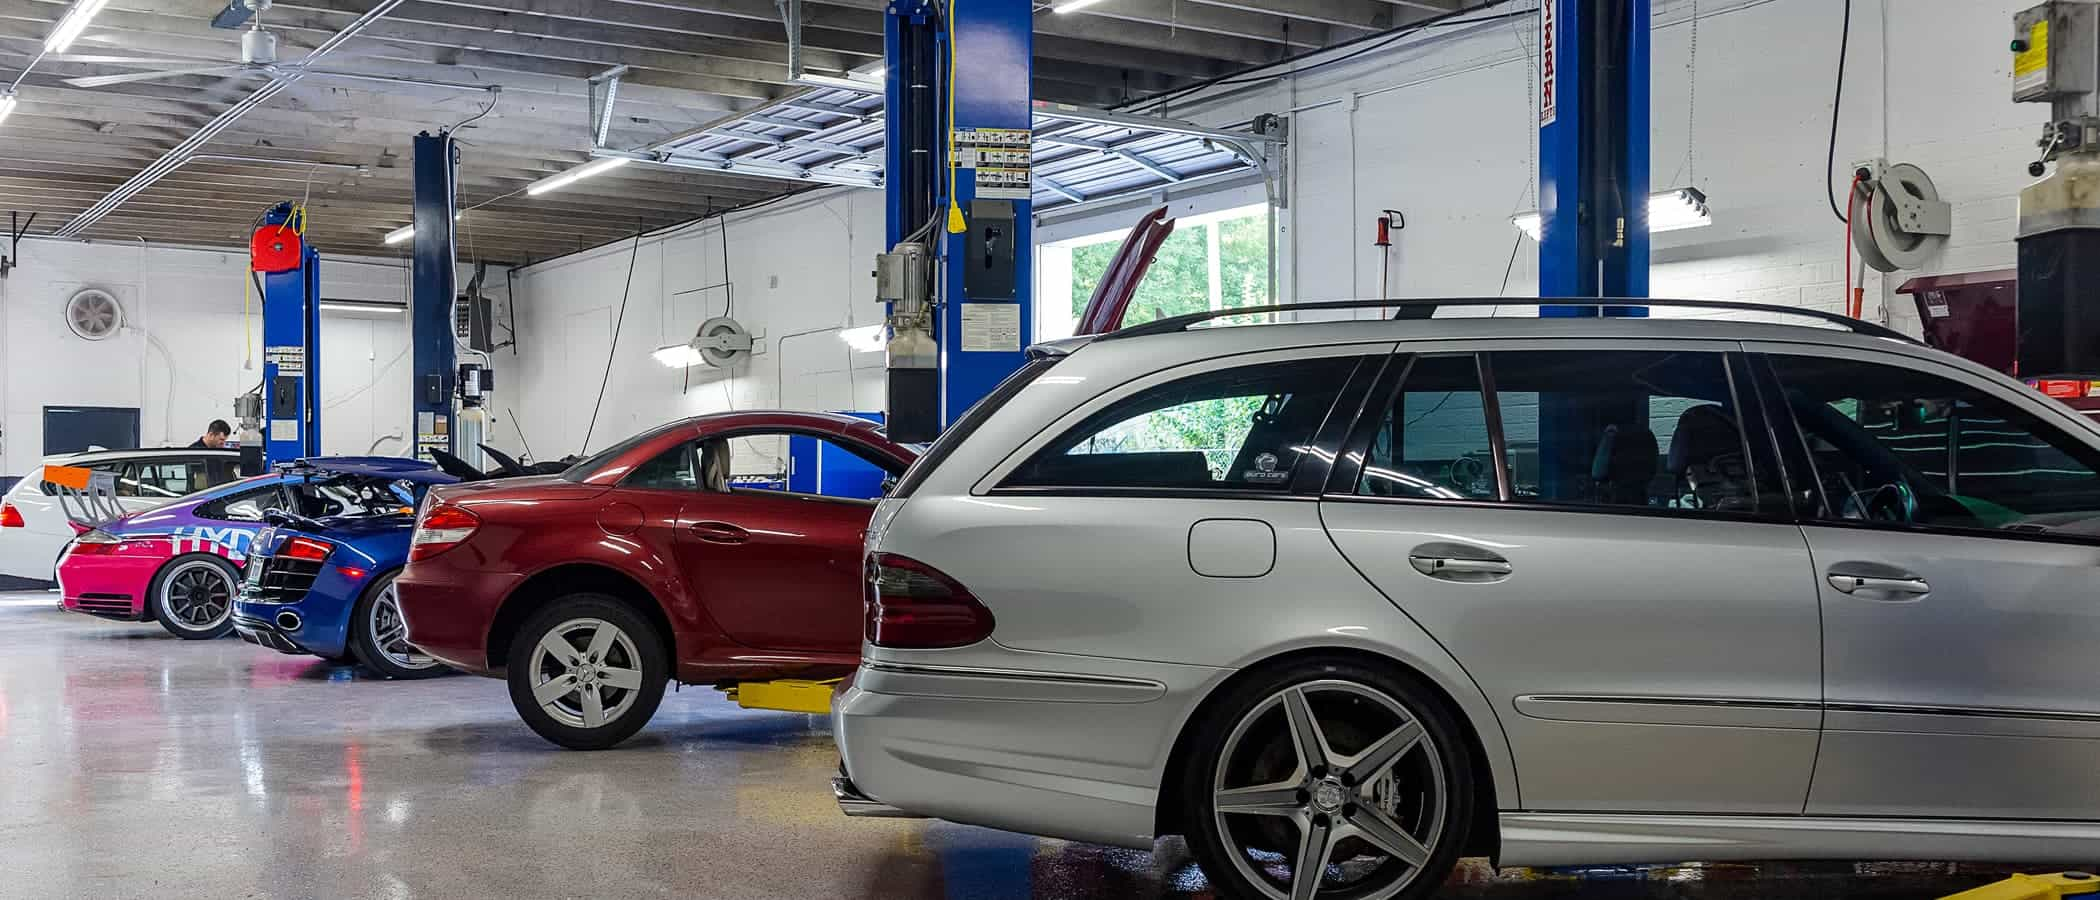 Charlotte Southend European Porsche Auto Repair Services